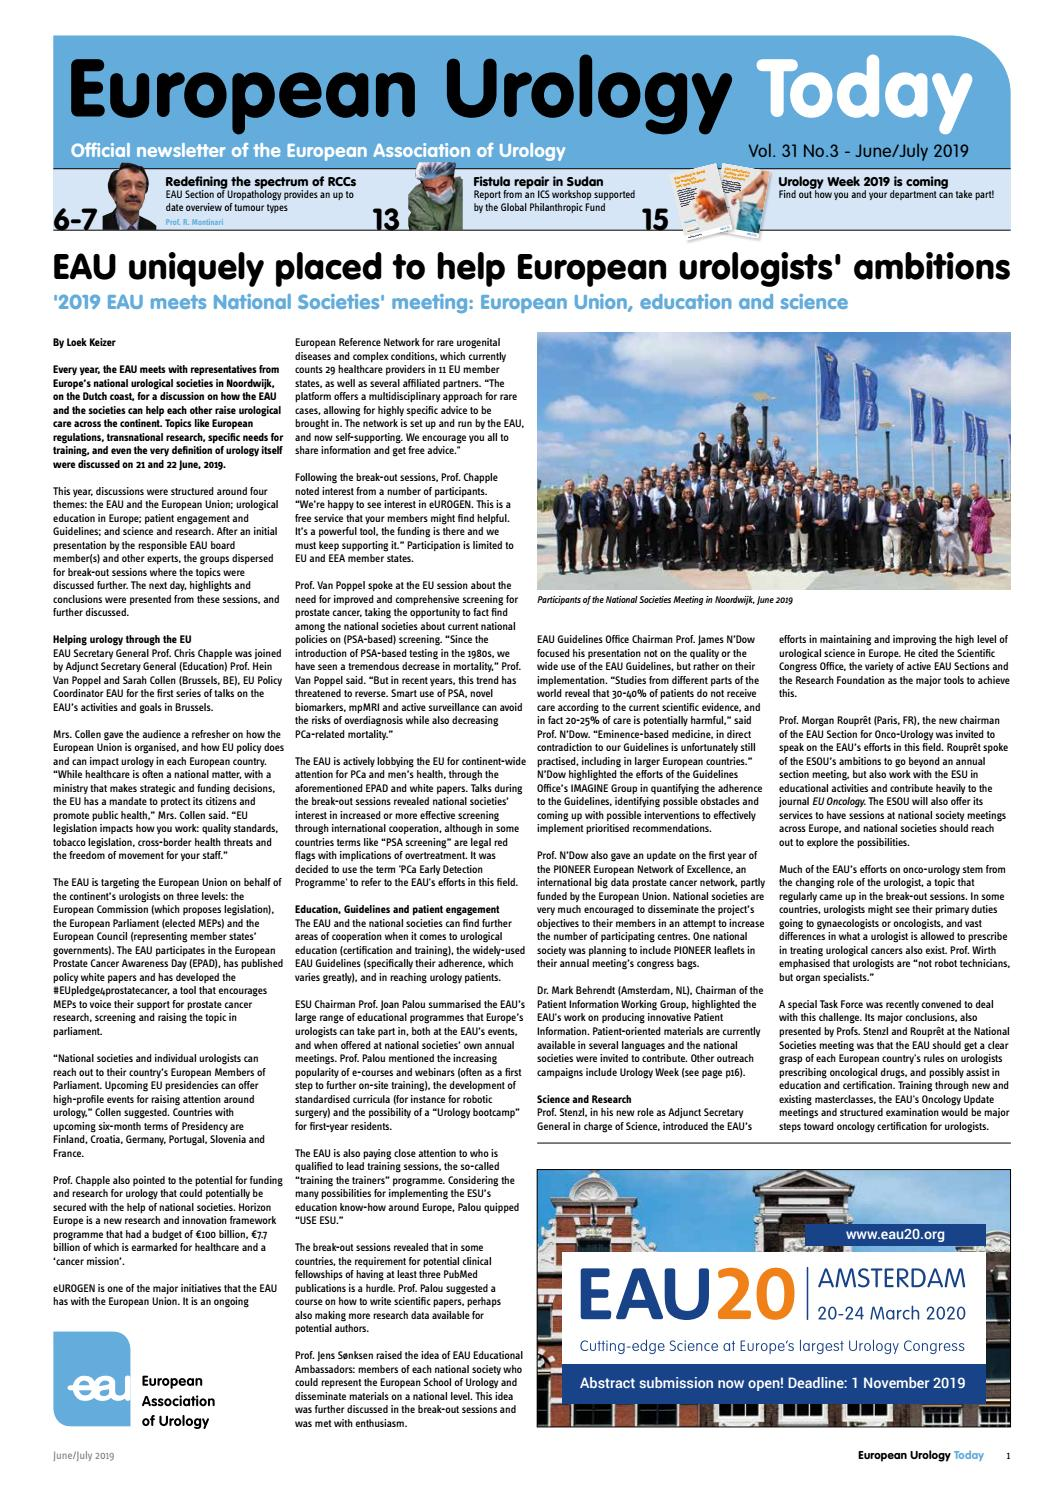 European Urology Today Vol 31 No 3 June July 2019 By